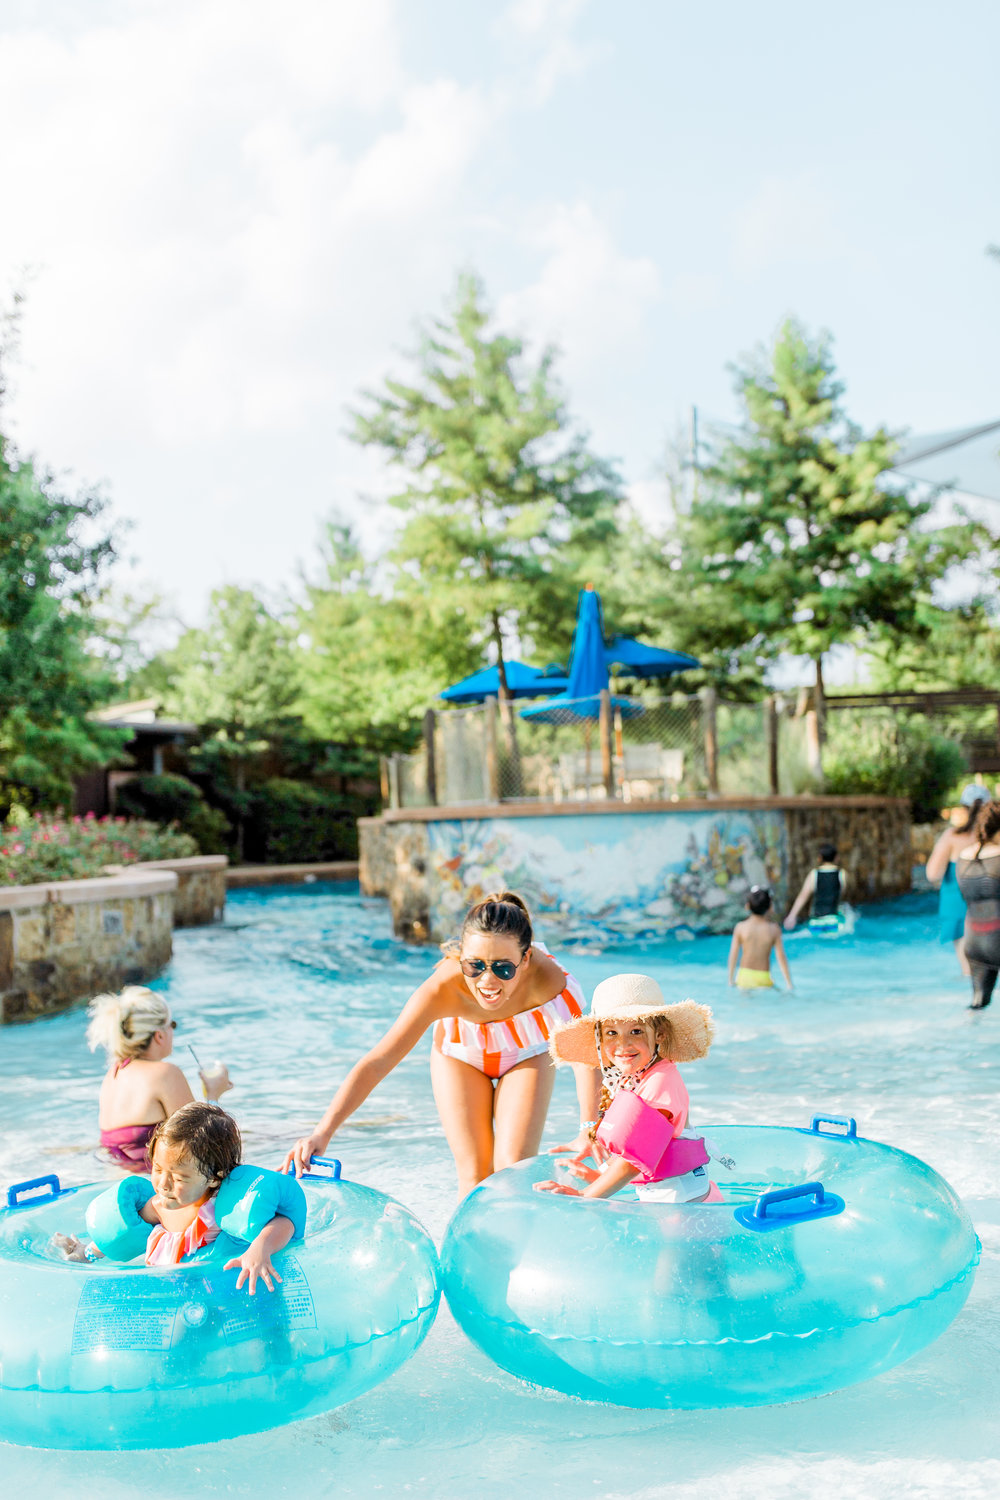 Woodlands Resort Houston Family Travel Blogger Staycation Best Family Staycation Water Park Vacation